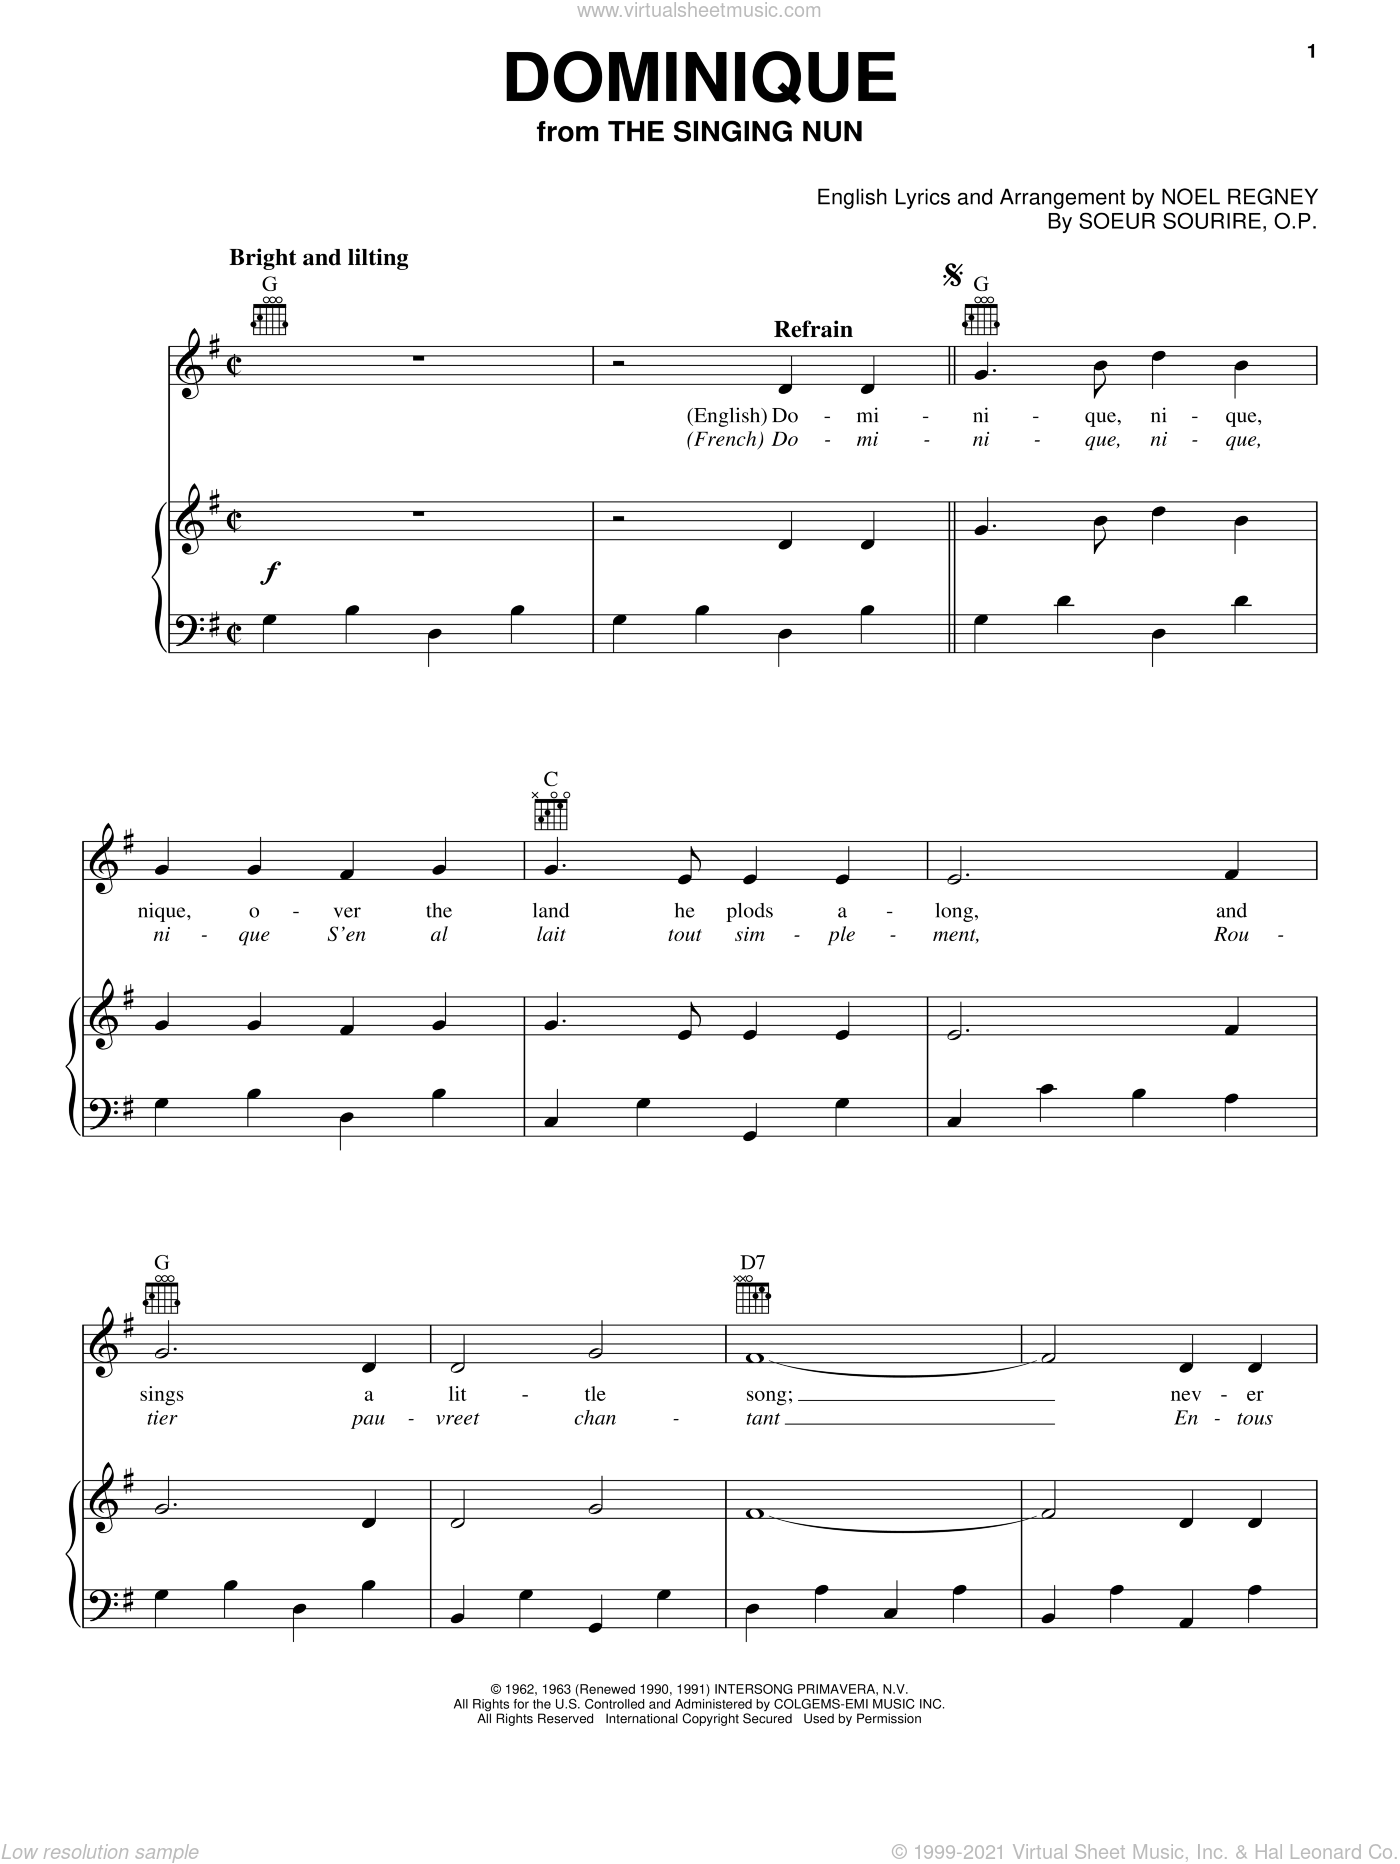 Dominique sheet music for voice, piano or guitar by The Singing Nun, intermediate voice, piano or guitar. Score Image Preview.